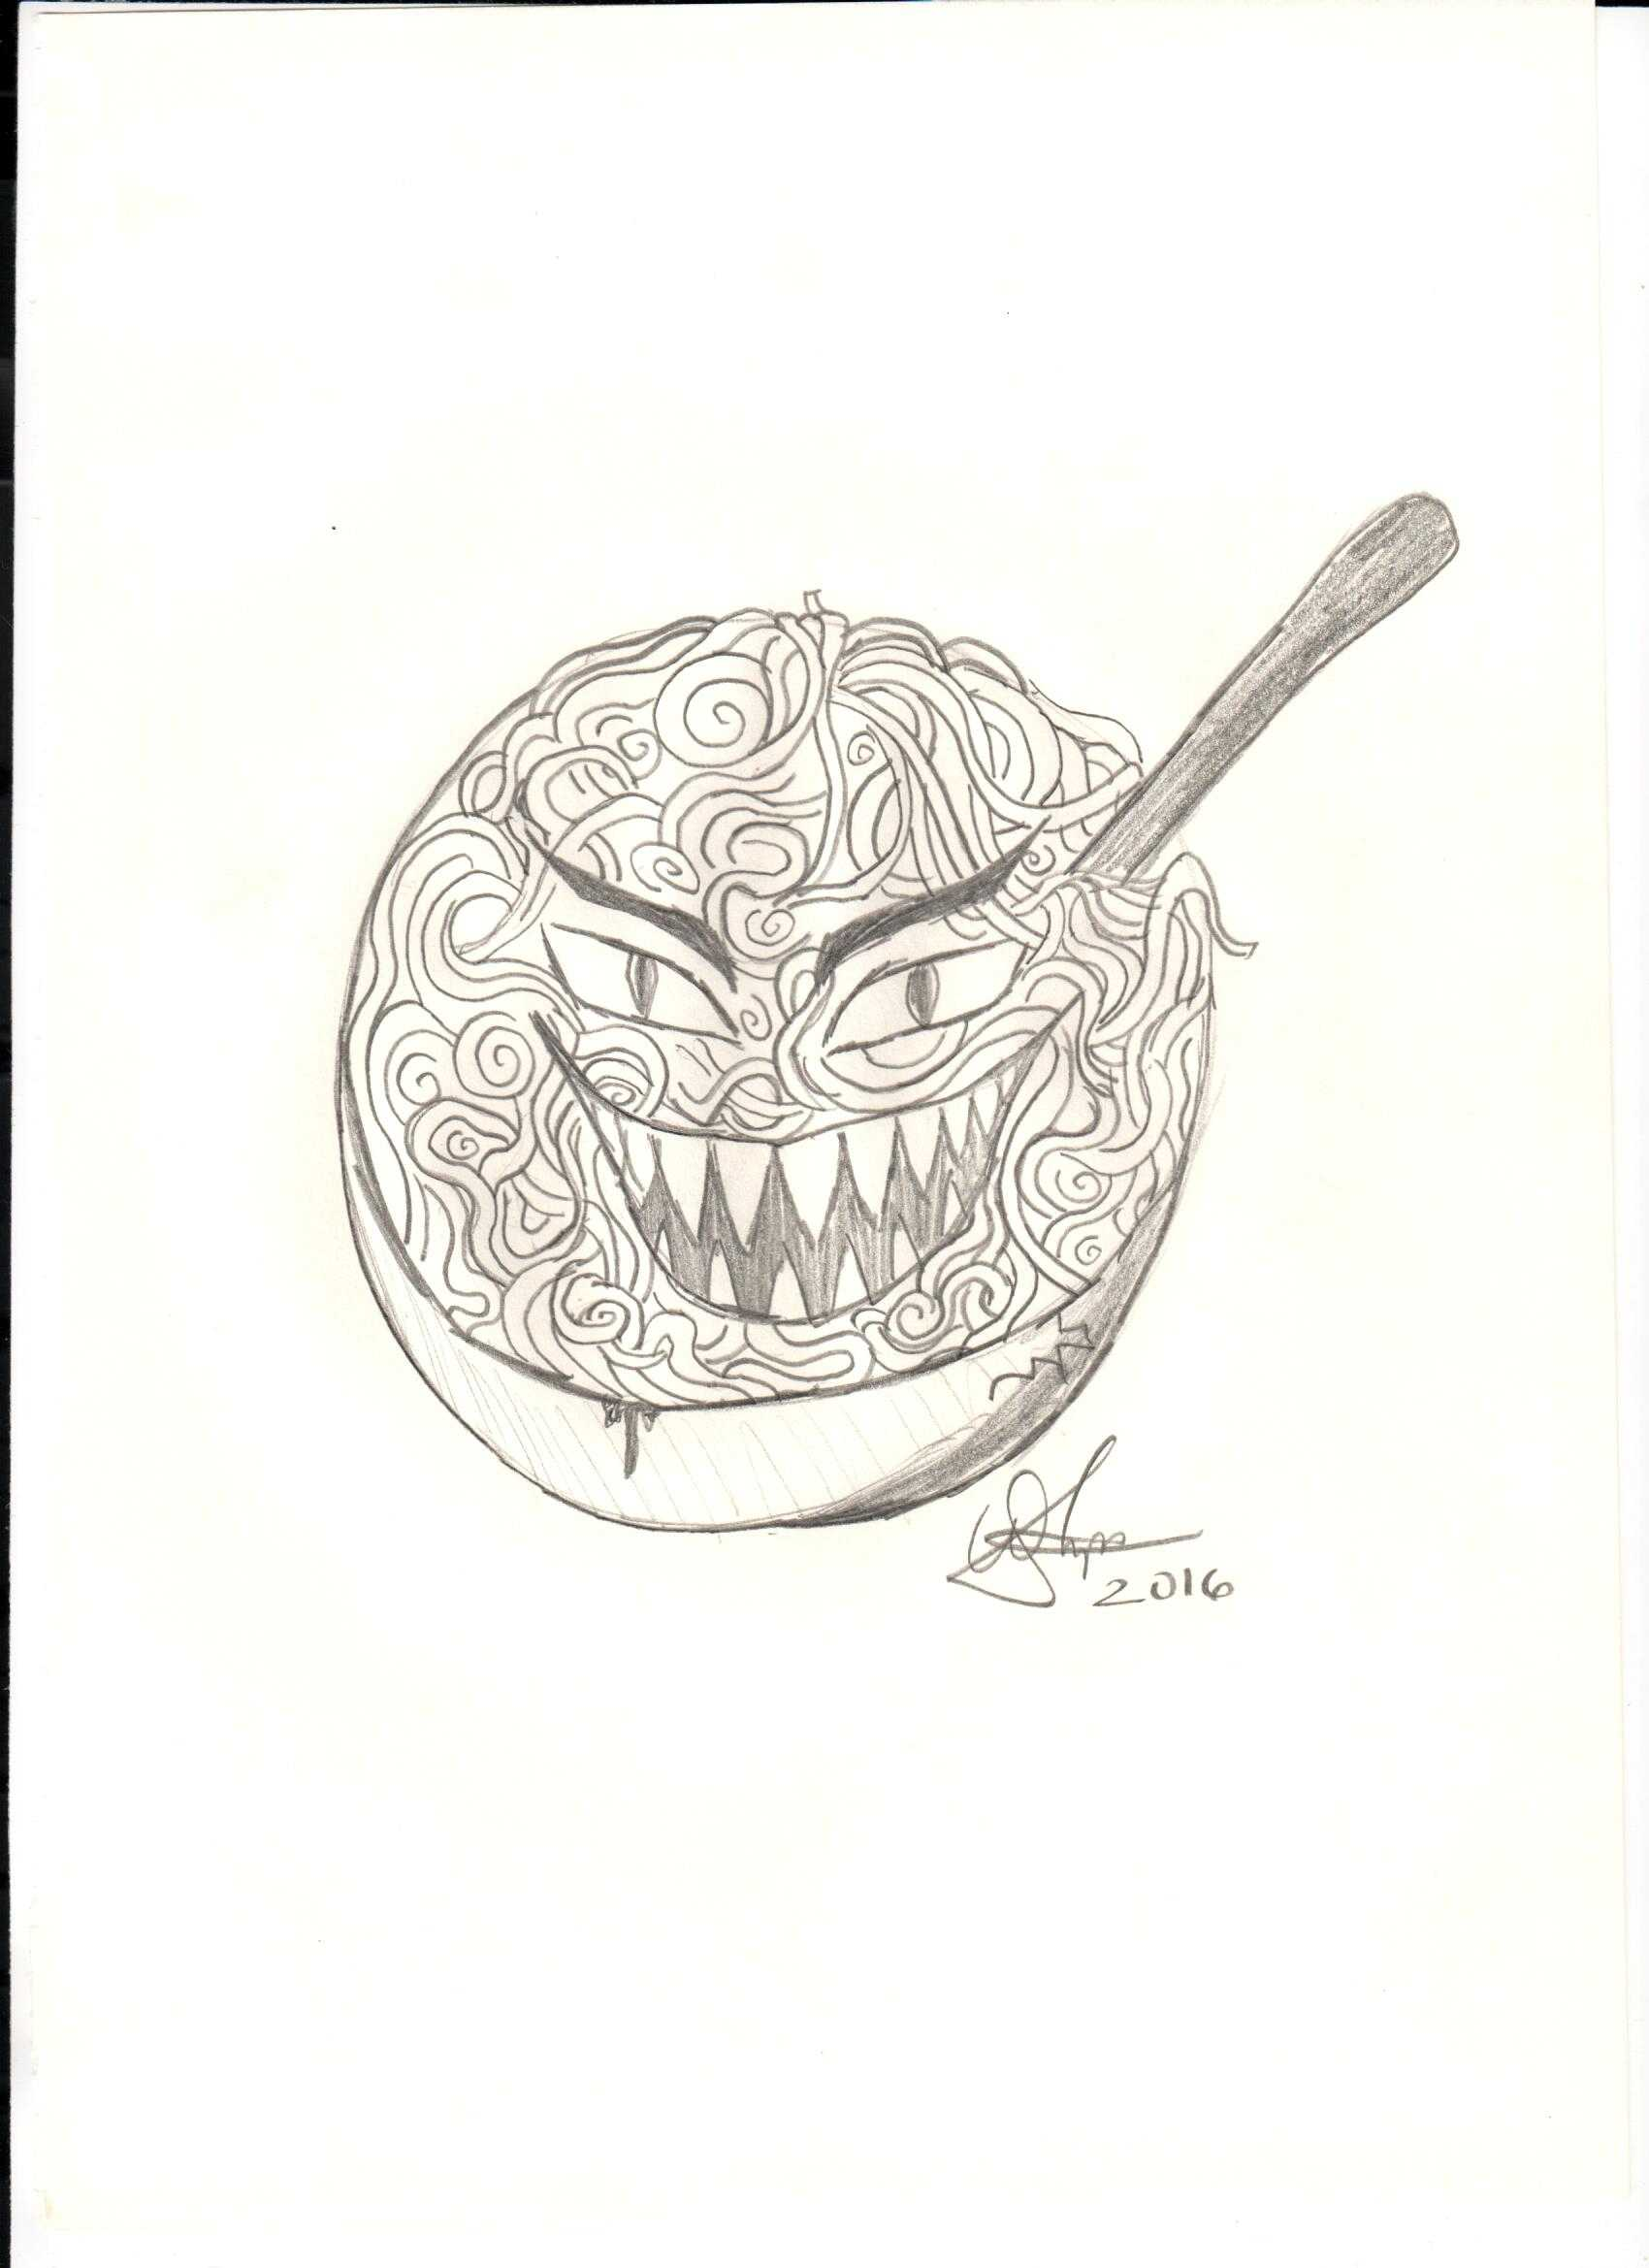 A bowl of leering pasta. Creepy objects are just some of the things you will find in Creepypasta stories.